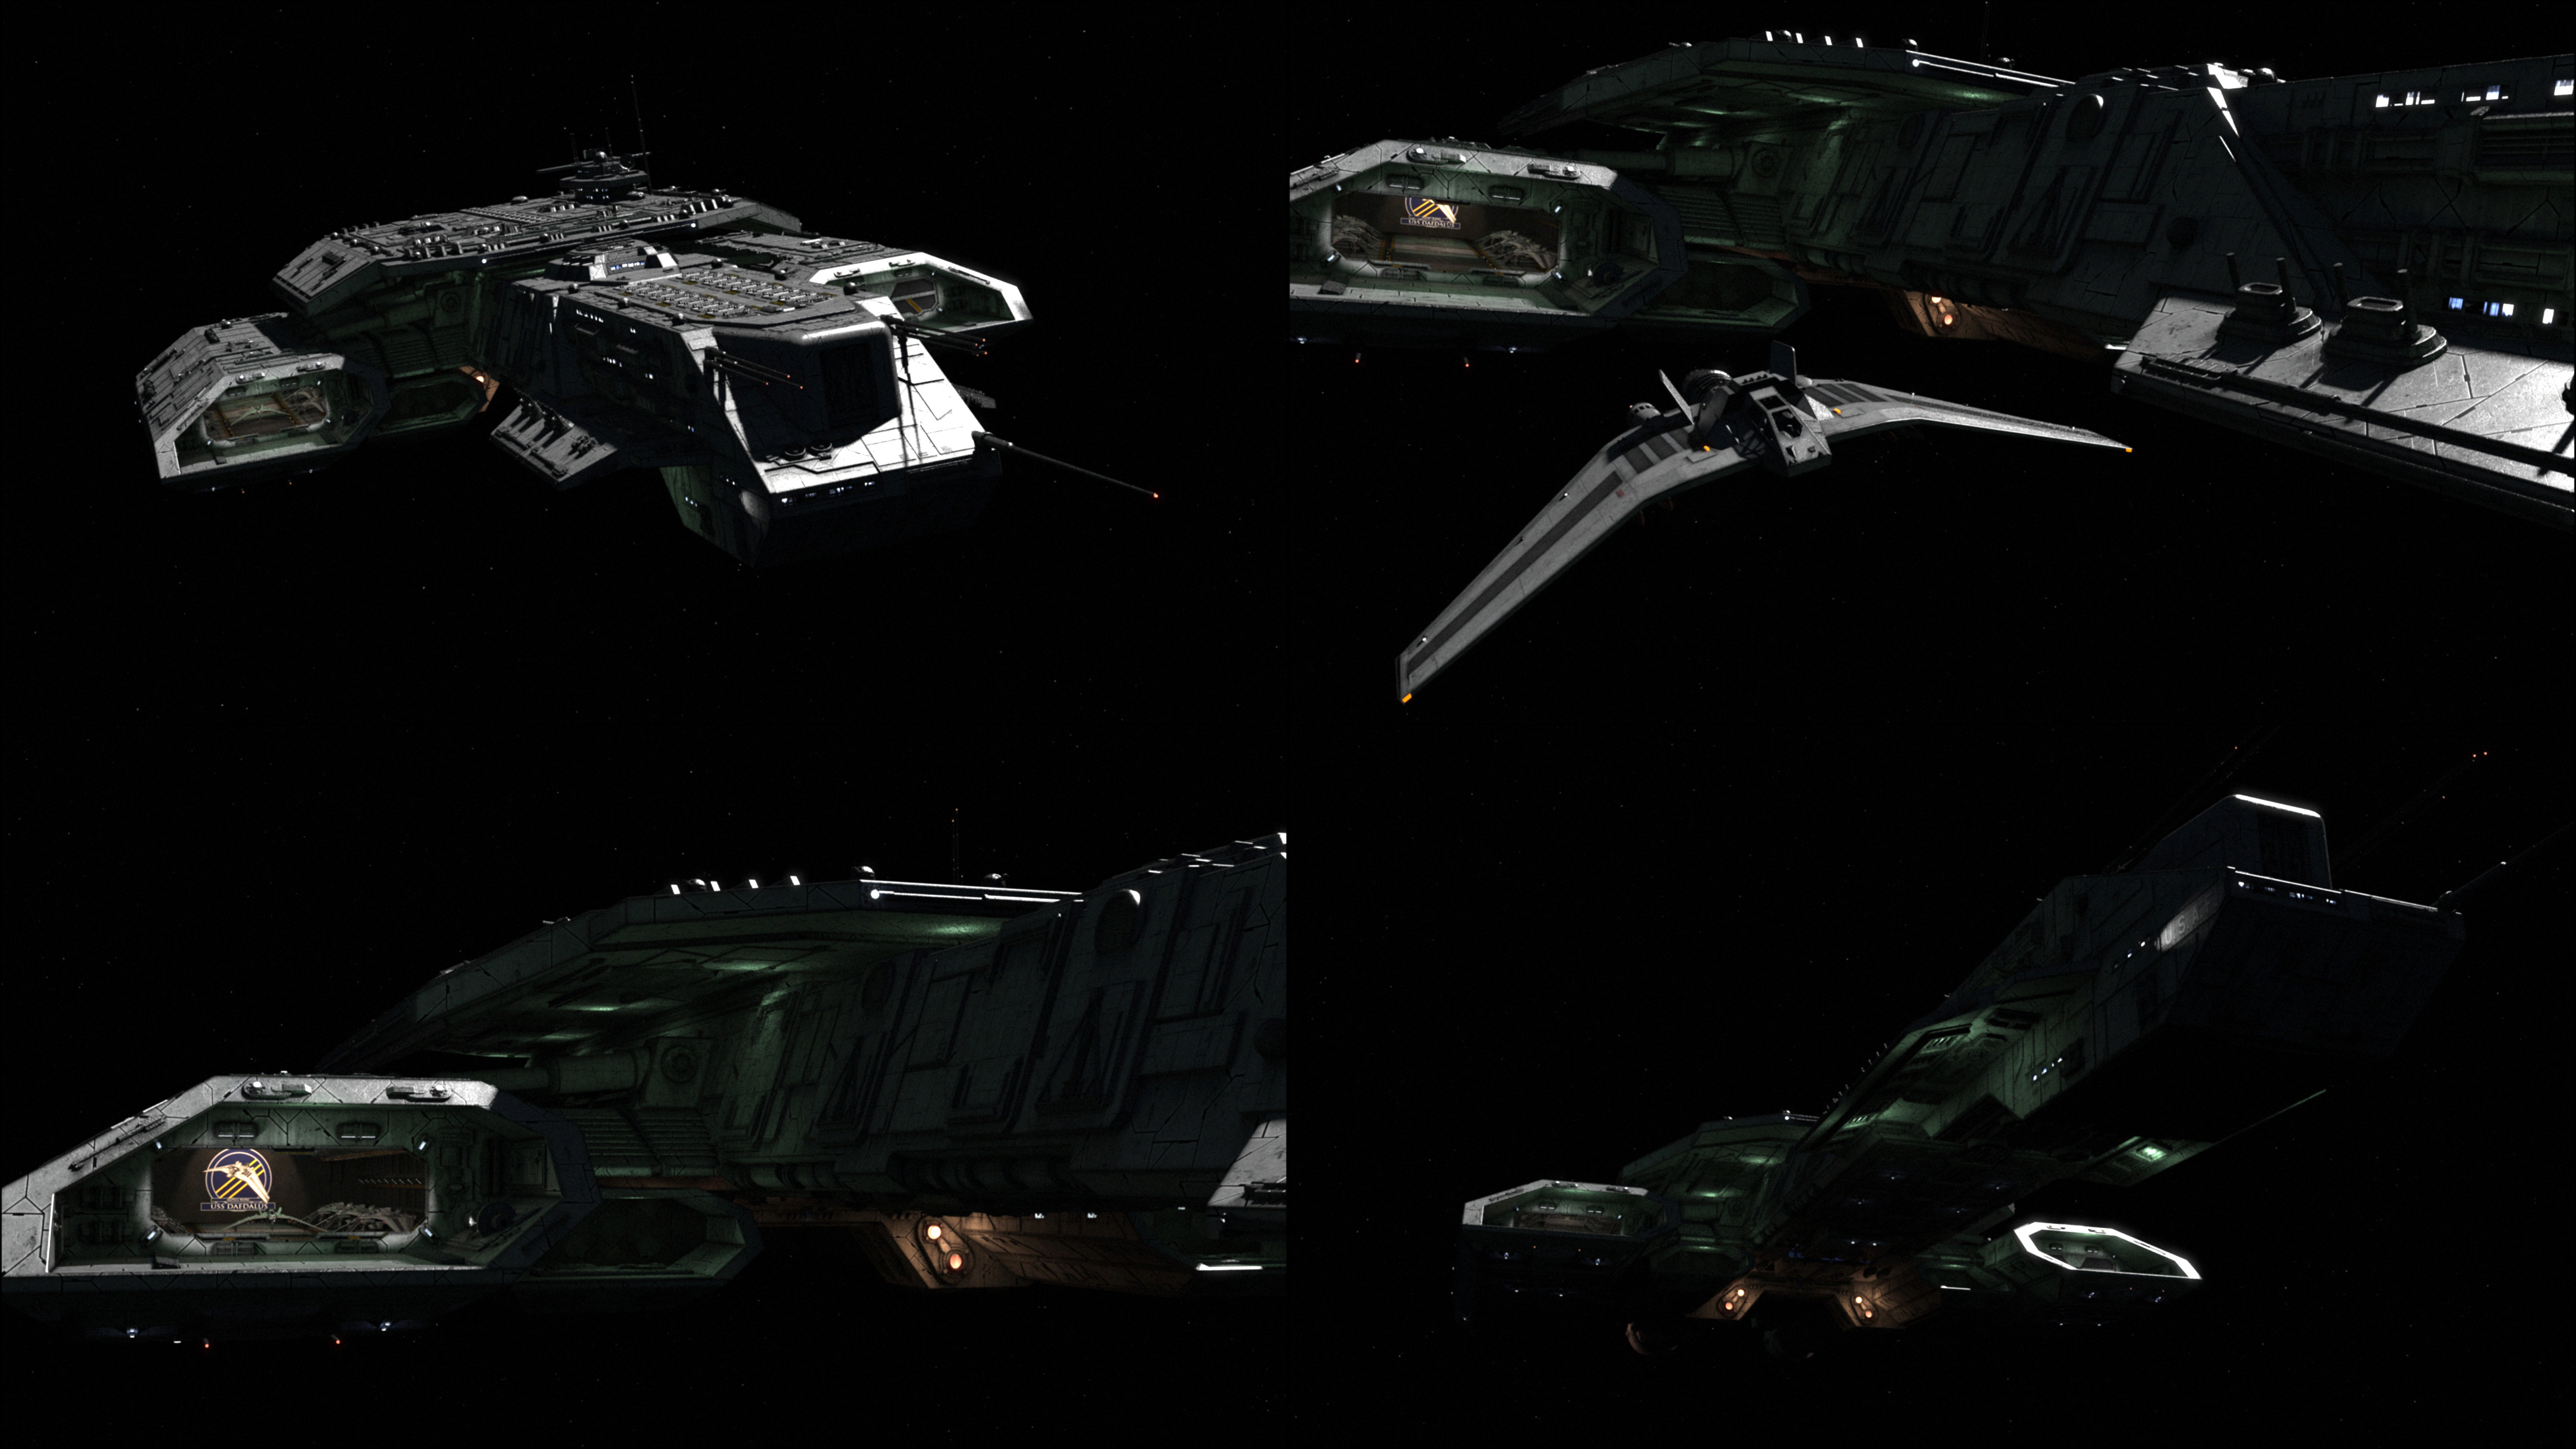 daedalus_2016_feature_by_alxfx-d9uh8af.jpg